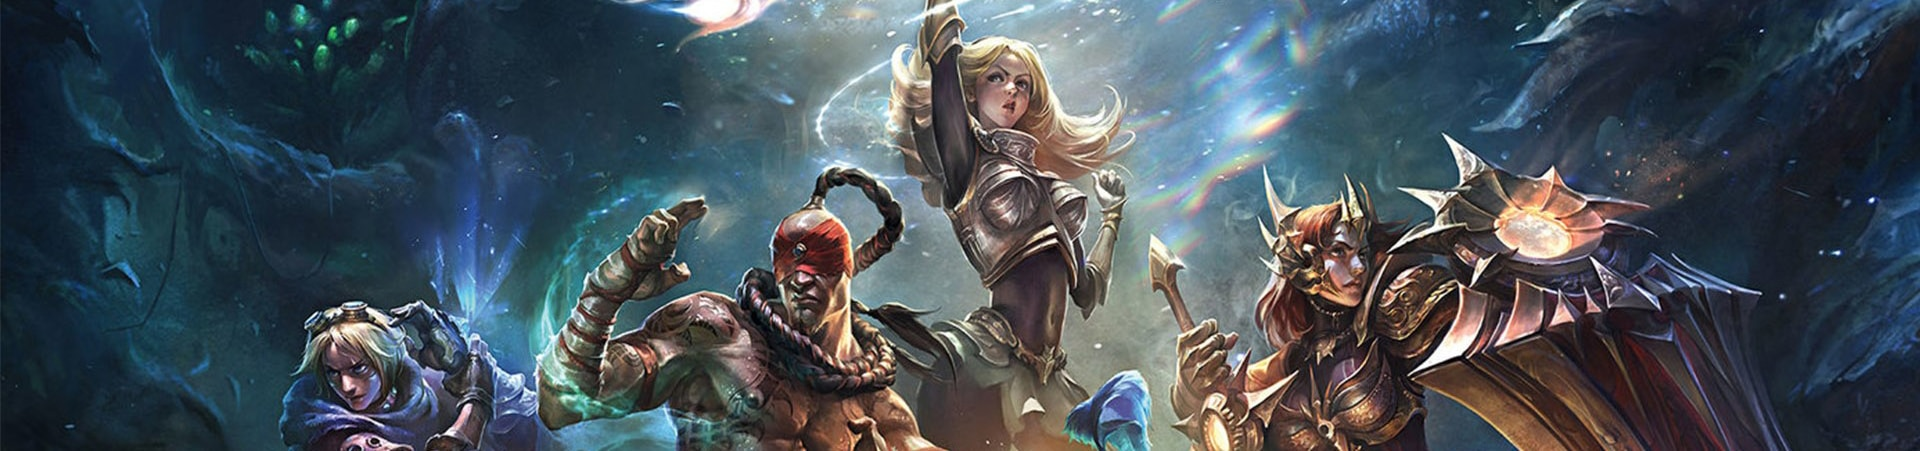 VIRTUOS STUDIO PARTNERS WITH RIOT GAMES TO DEVELOP LEAGUE OF LEGENDS SKINS